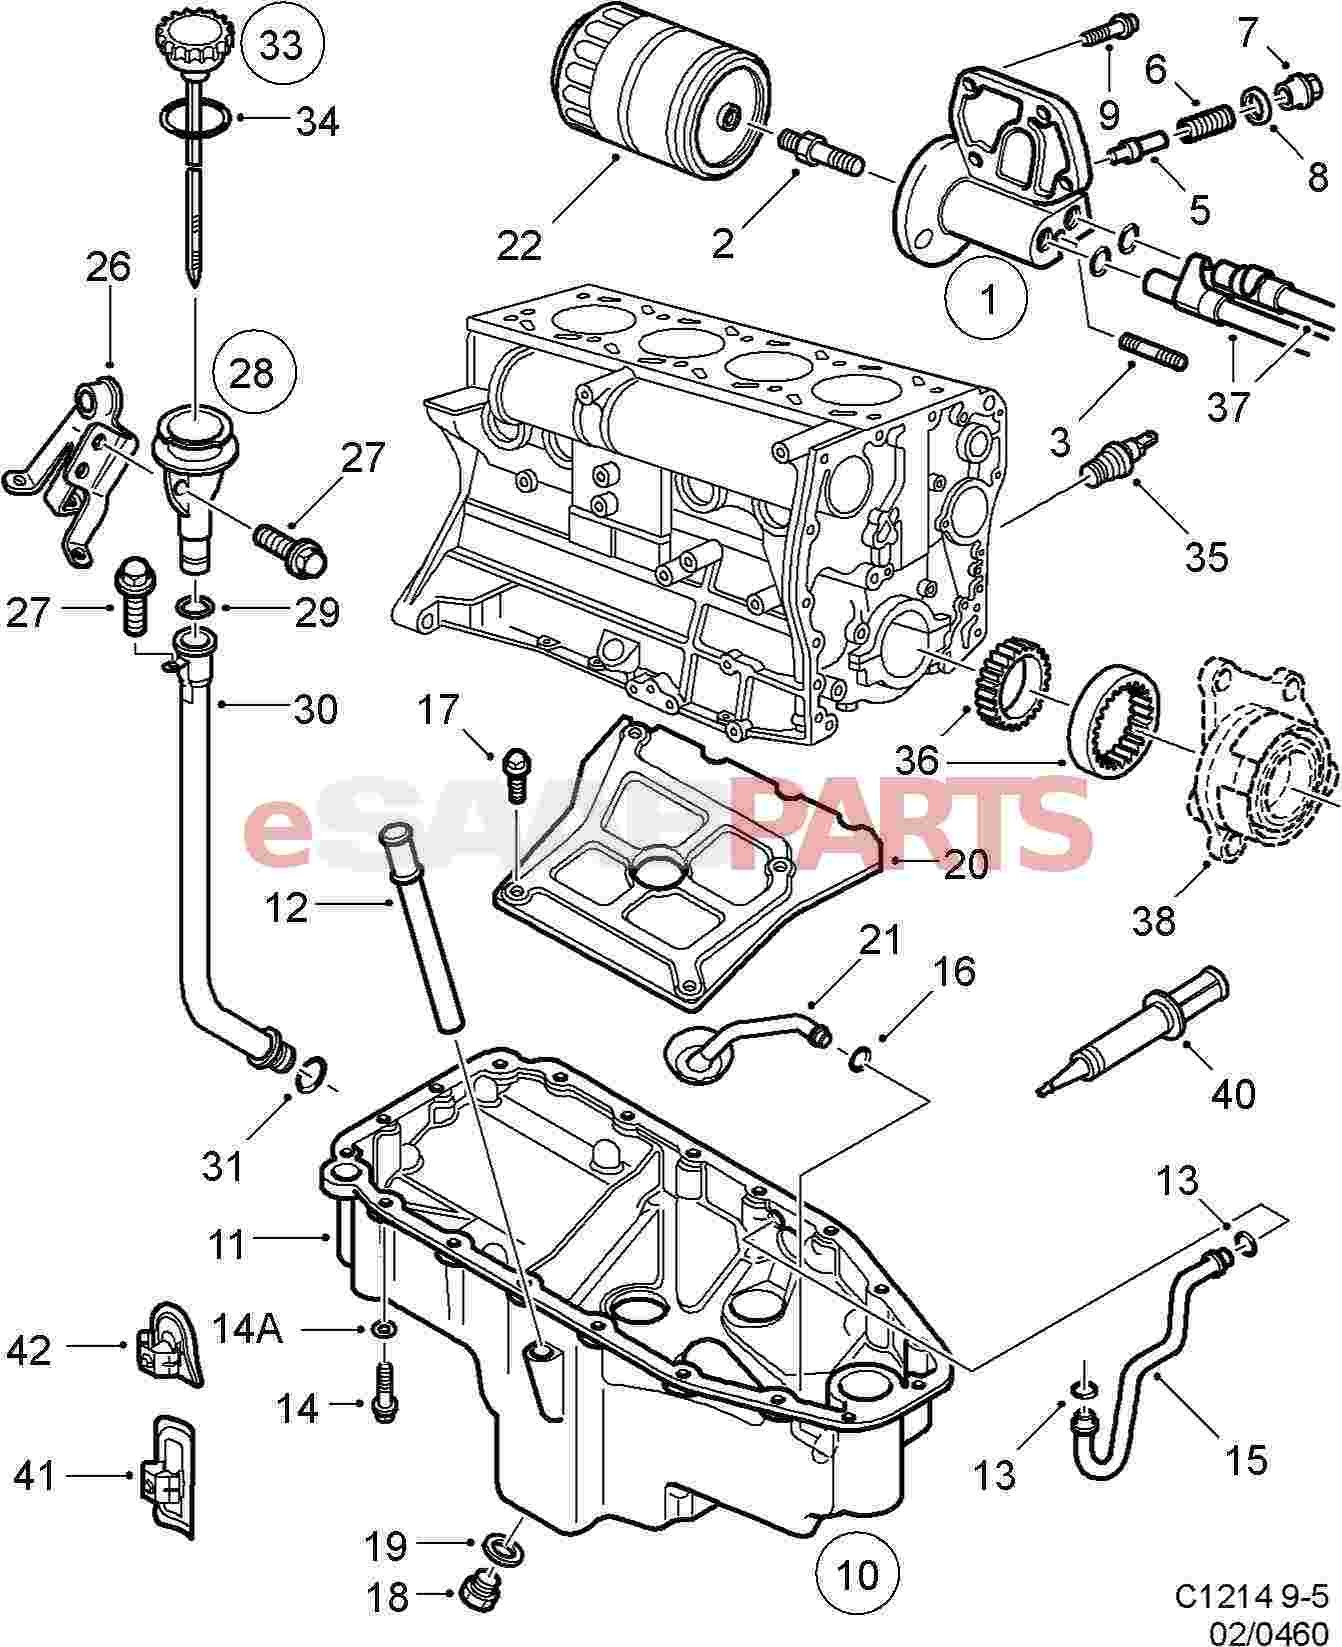 saab 93 wiring diagram for sale